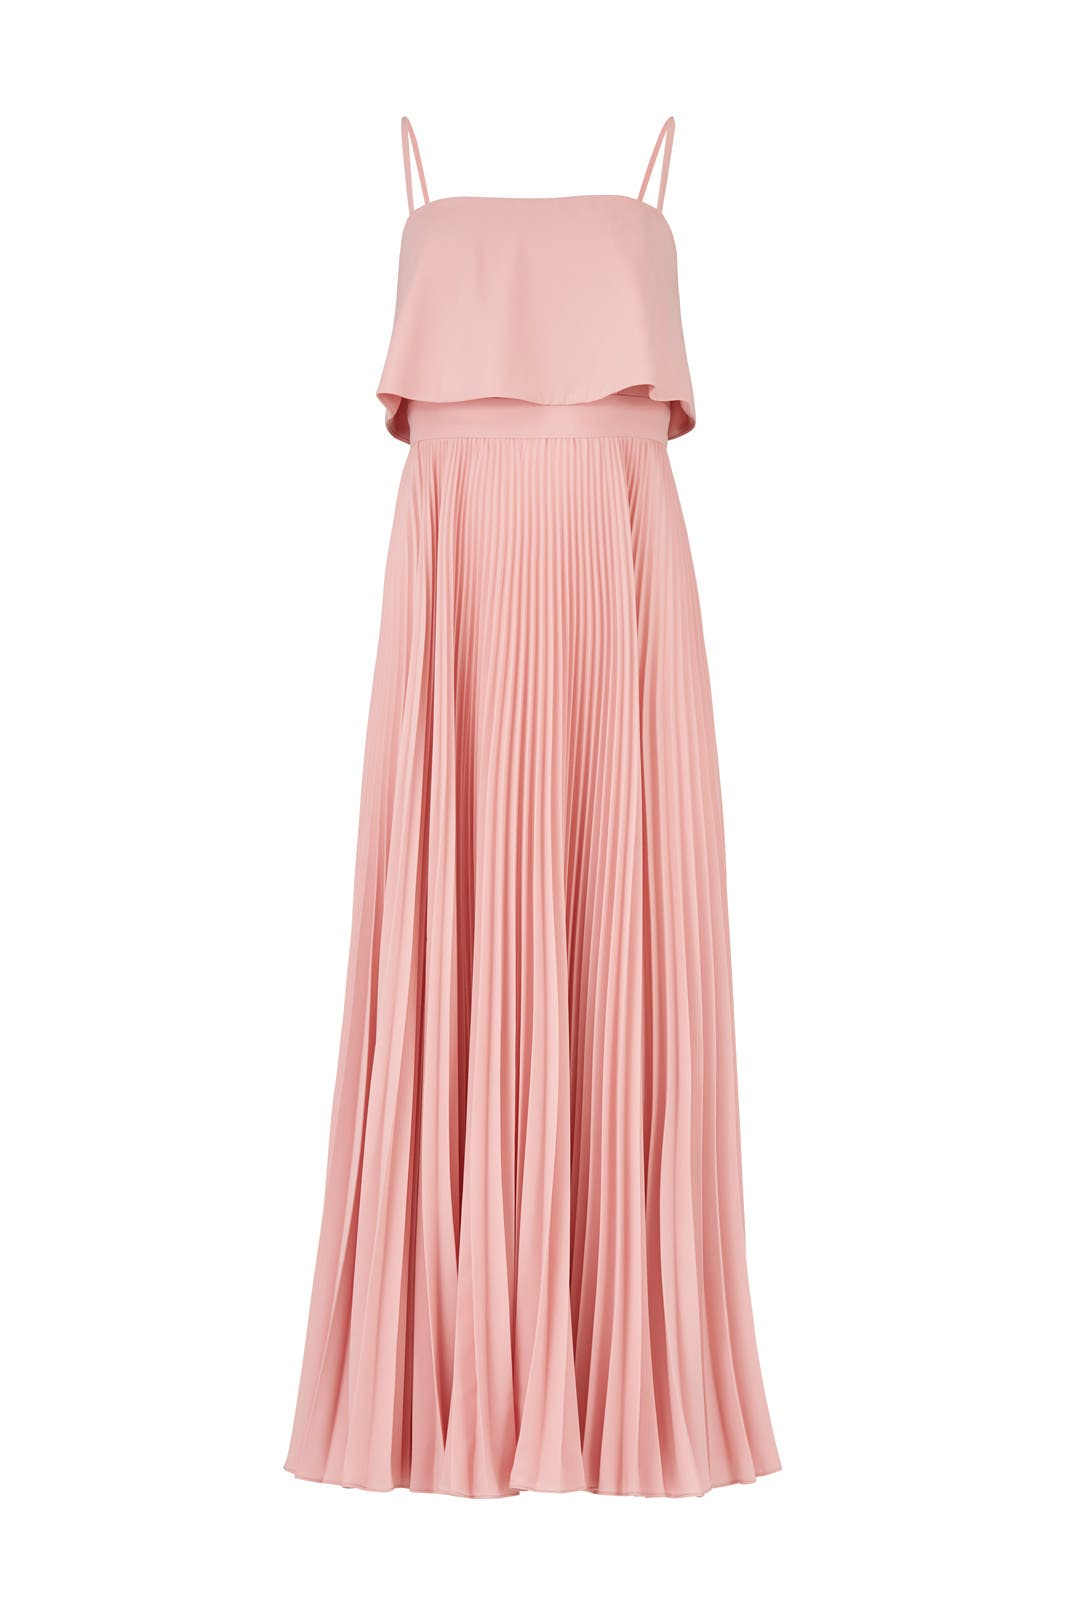 Rose Water Pleated Gown by Jill Jill Stuart for $50 - $80 | Rent the ...